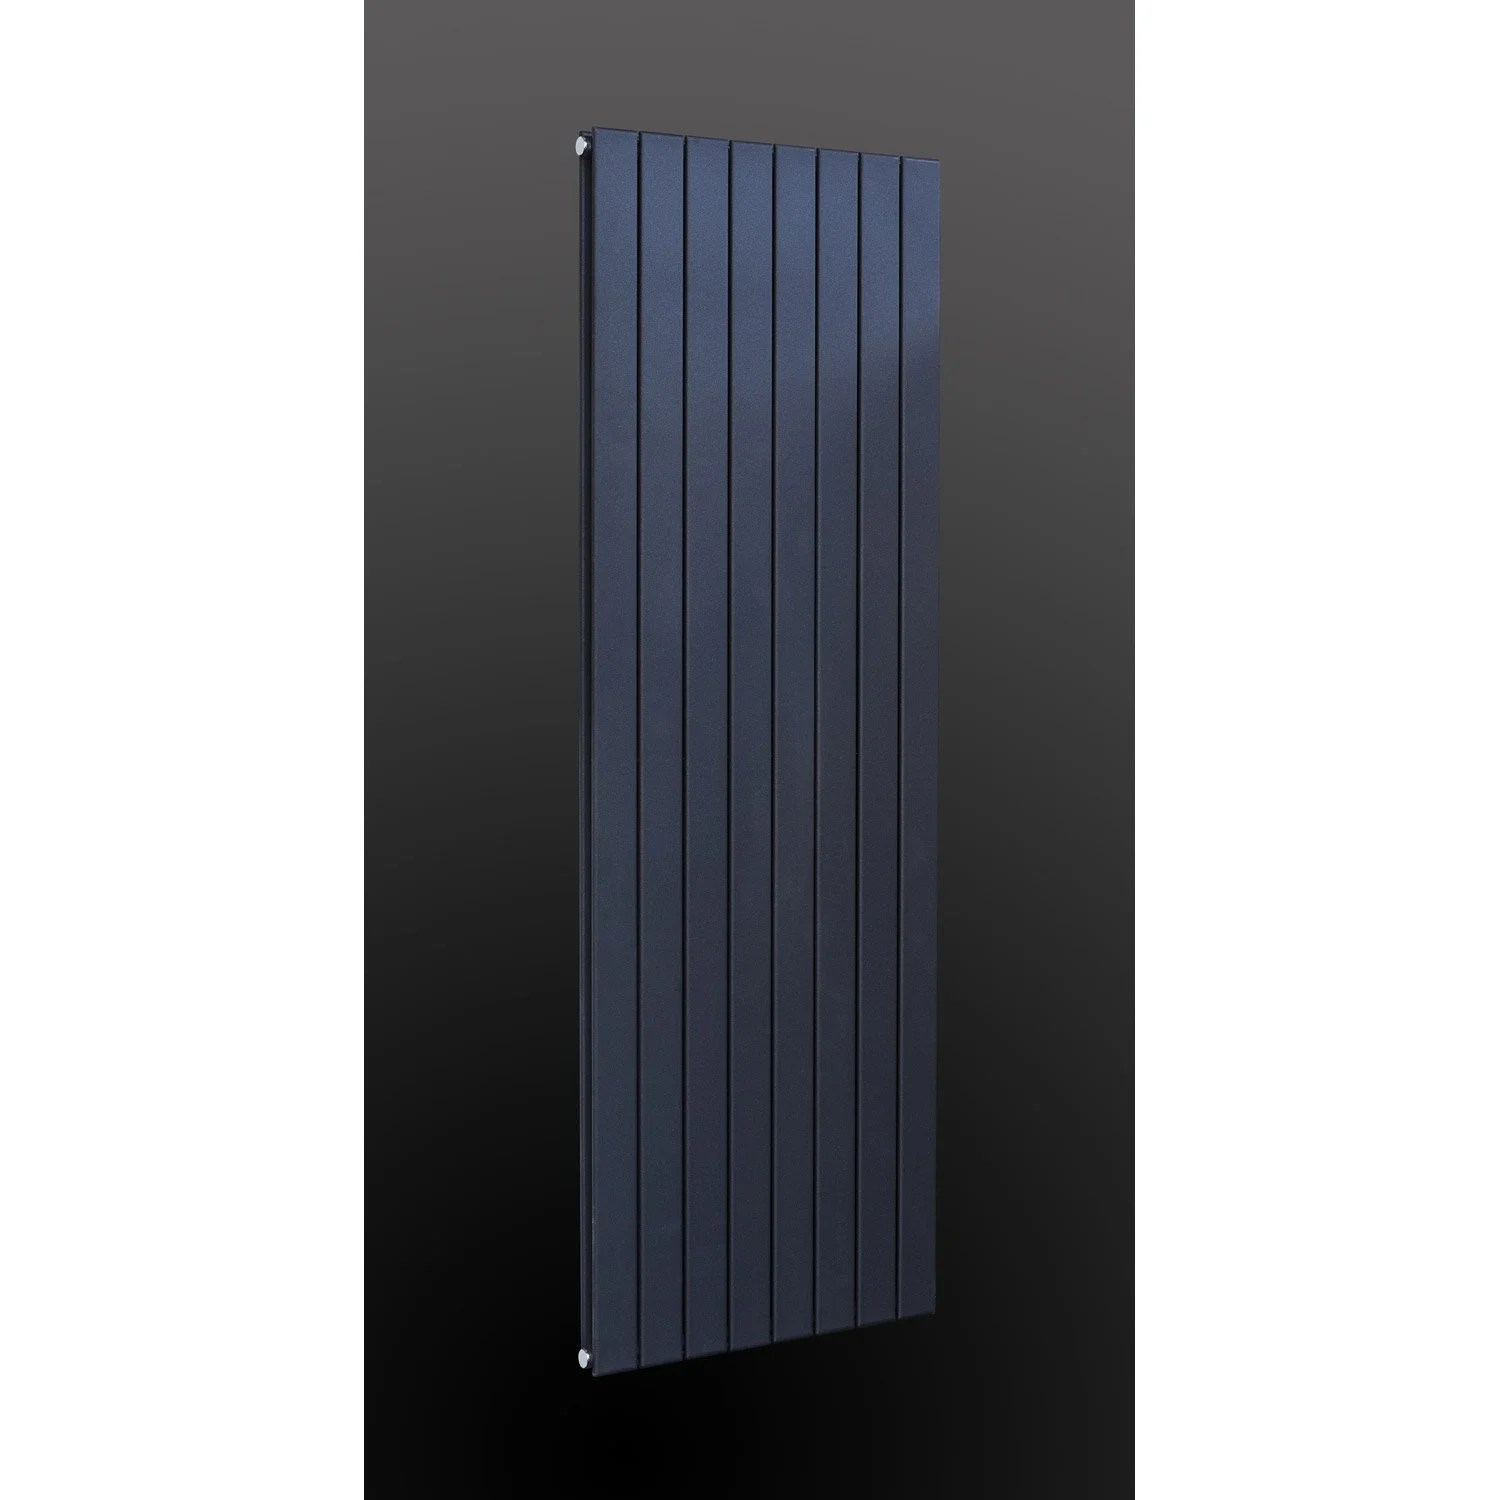 Leroy Merlin Radiateur Vertical Radiateur Chauffage Central Pianosa Anthracite L 59 8 Cm 1891 W